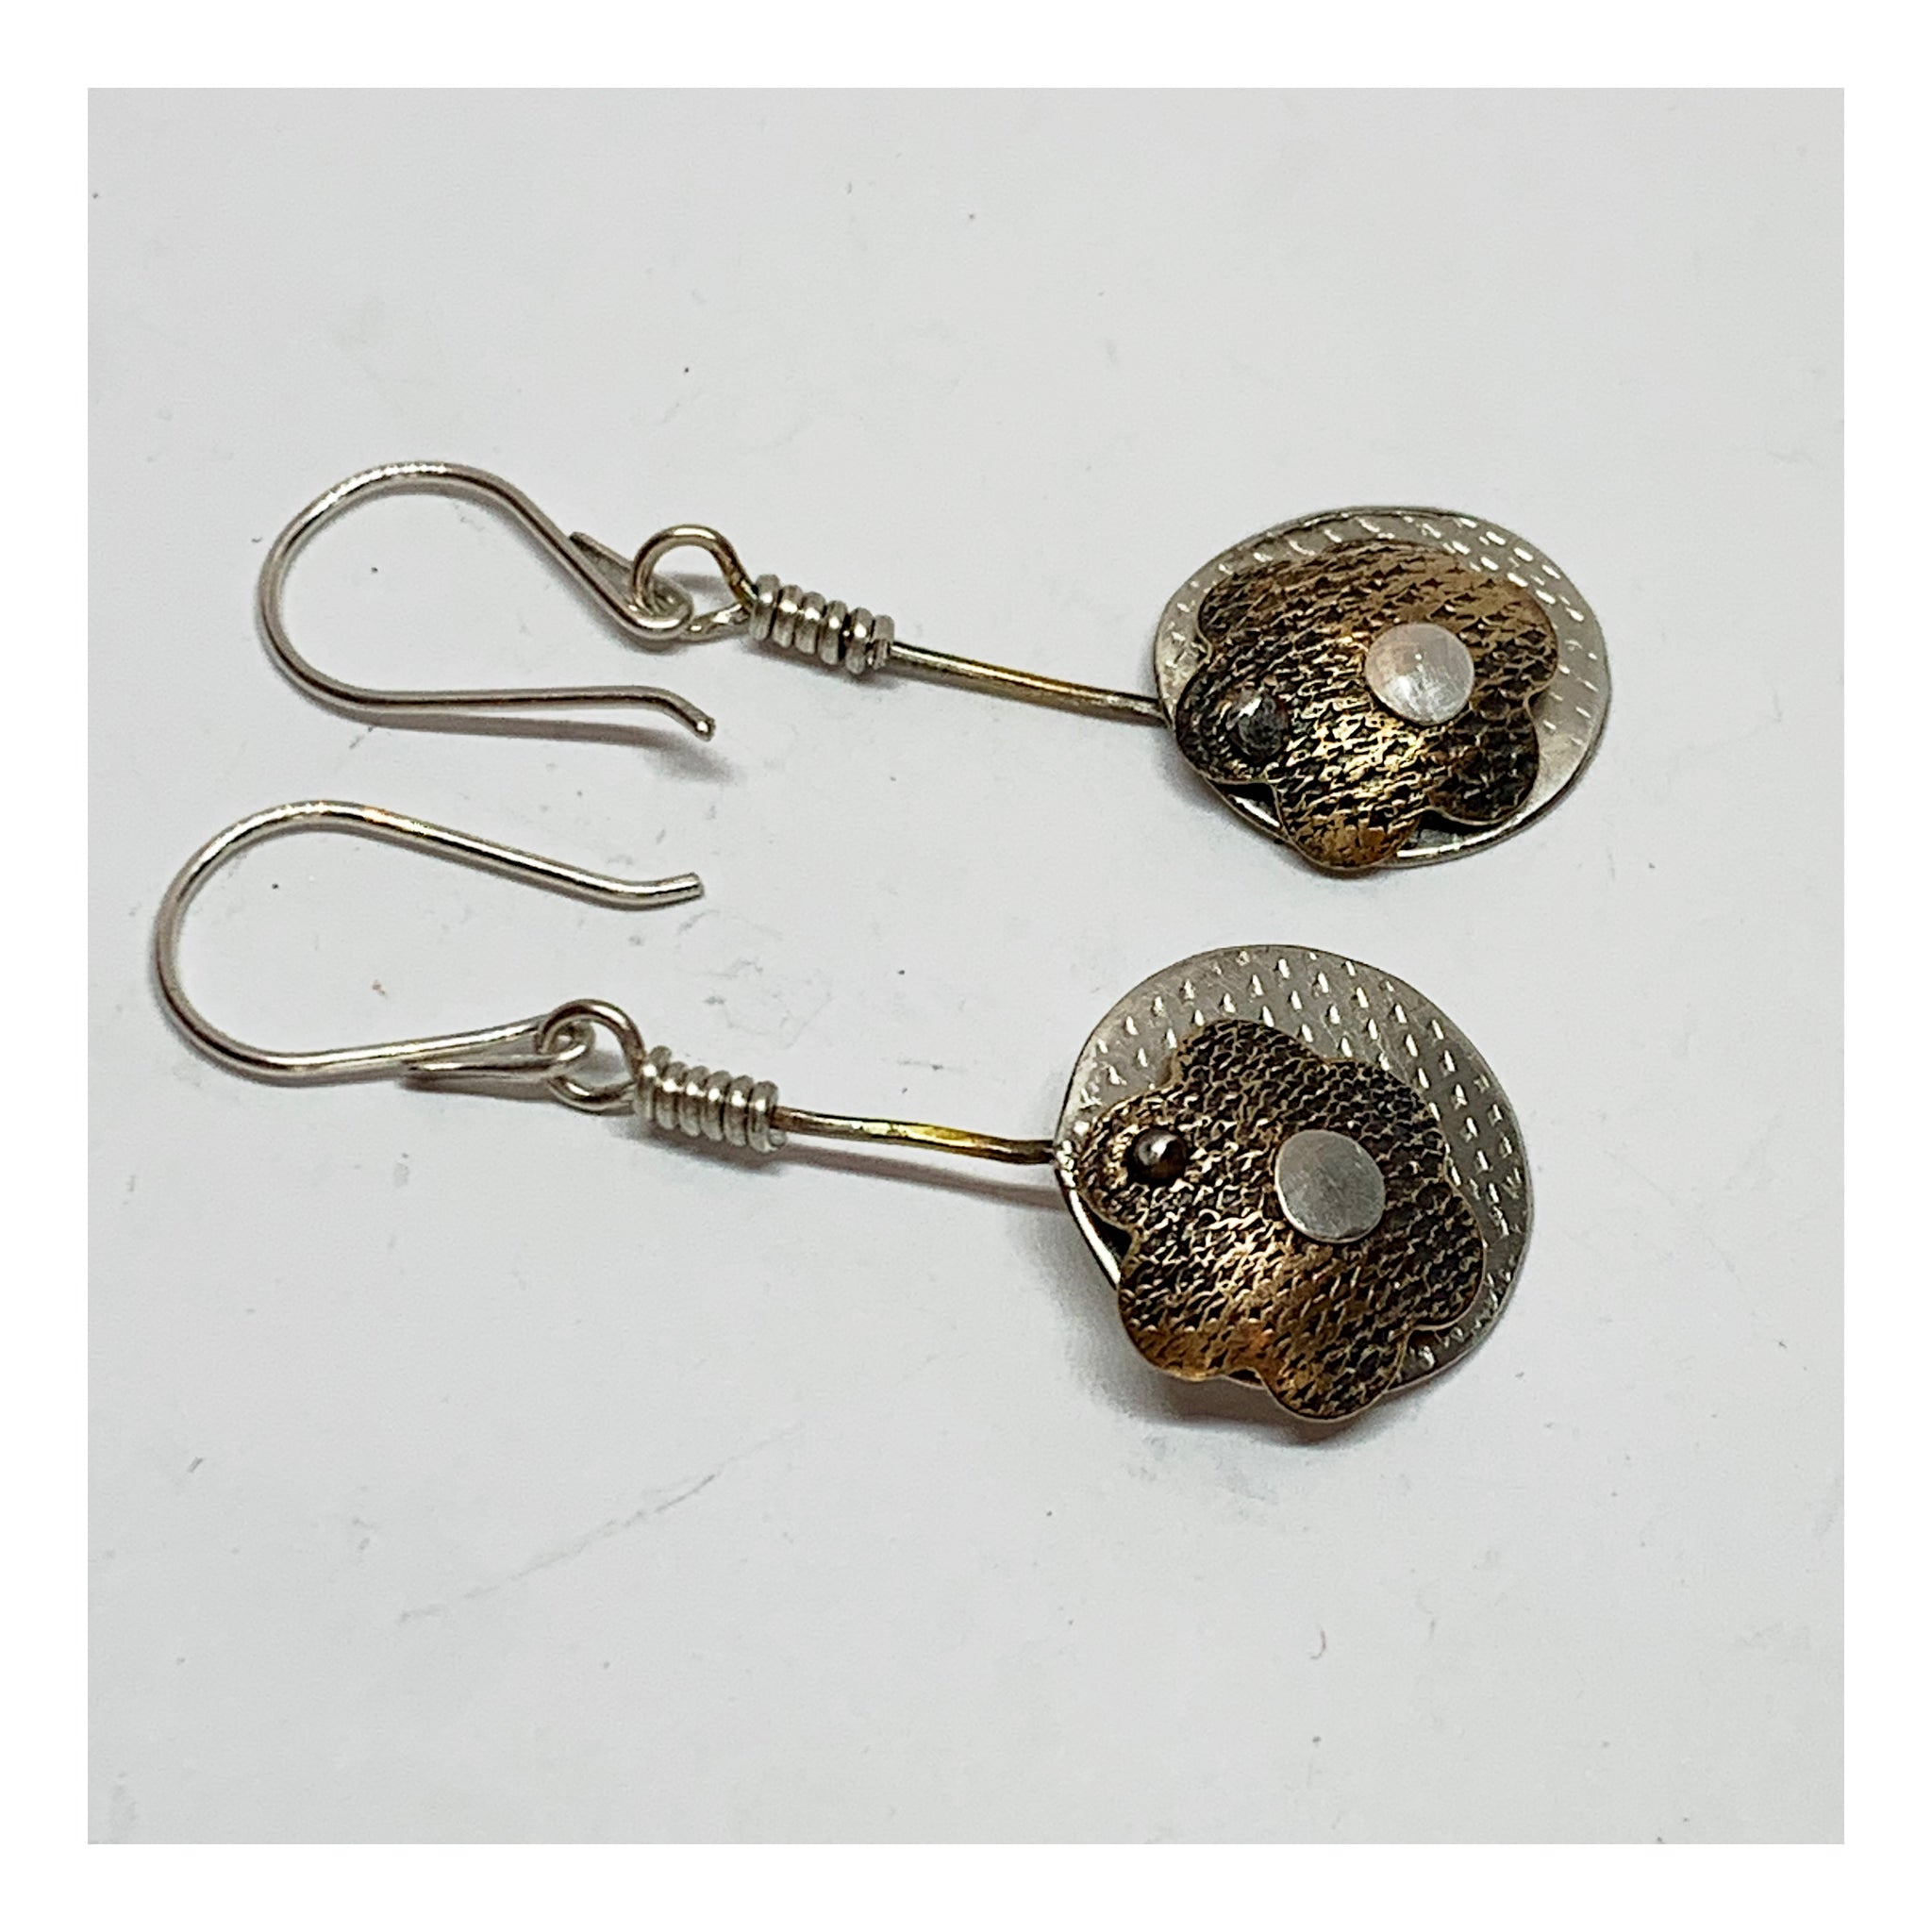 Mixed Metals Floral Earrings - Drop and Dangle Earrings